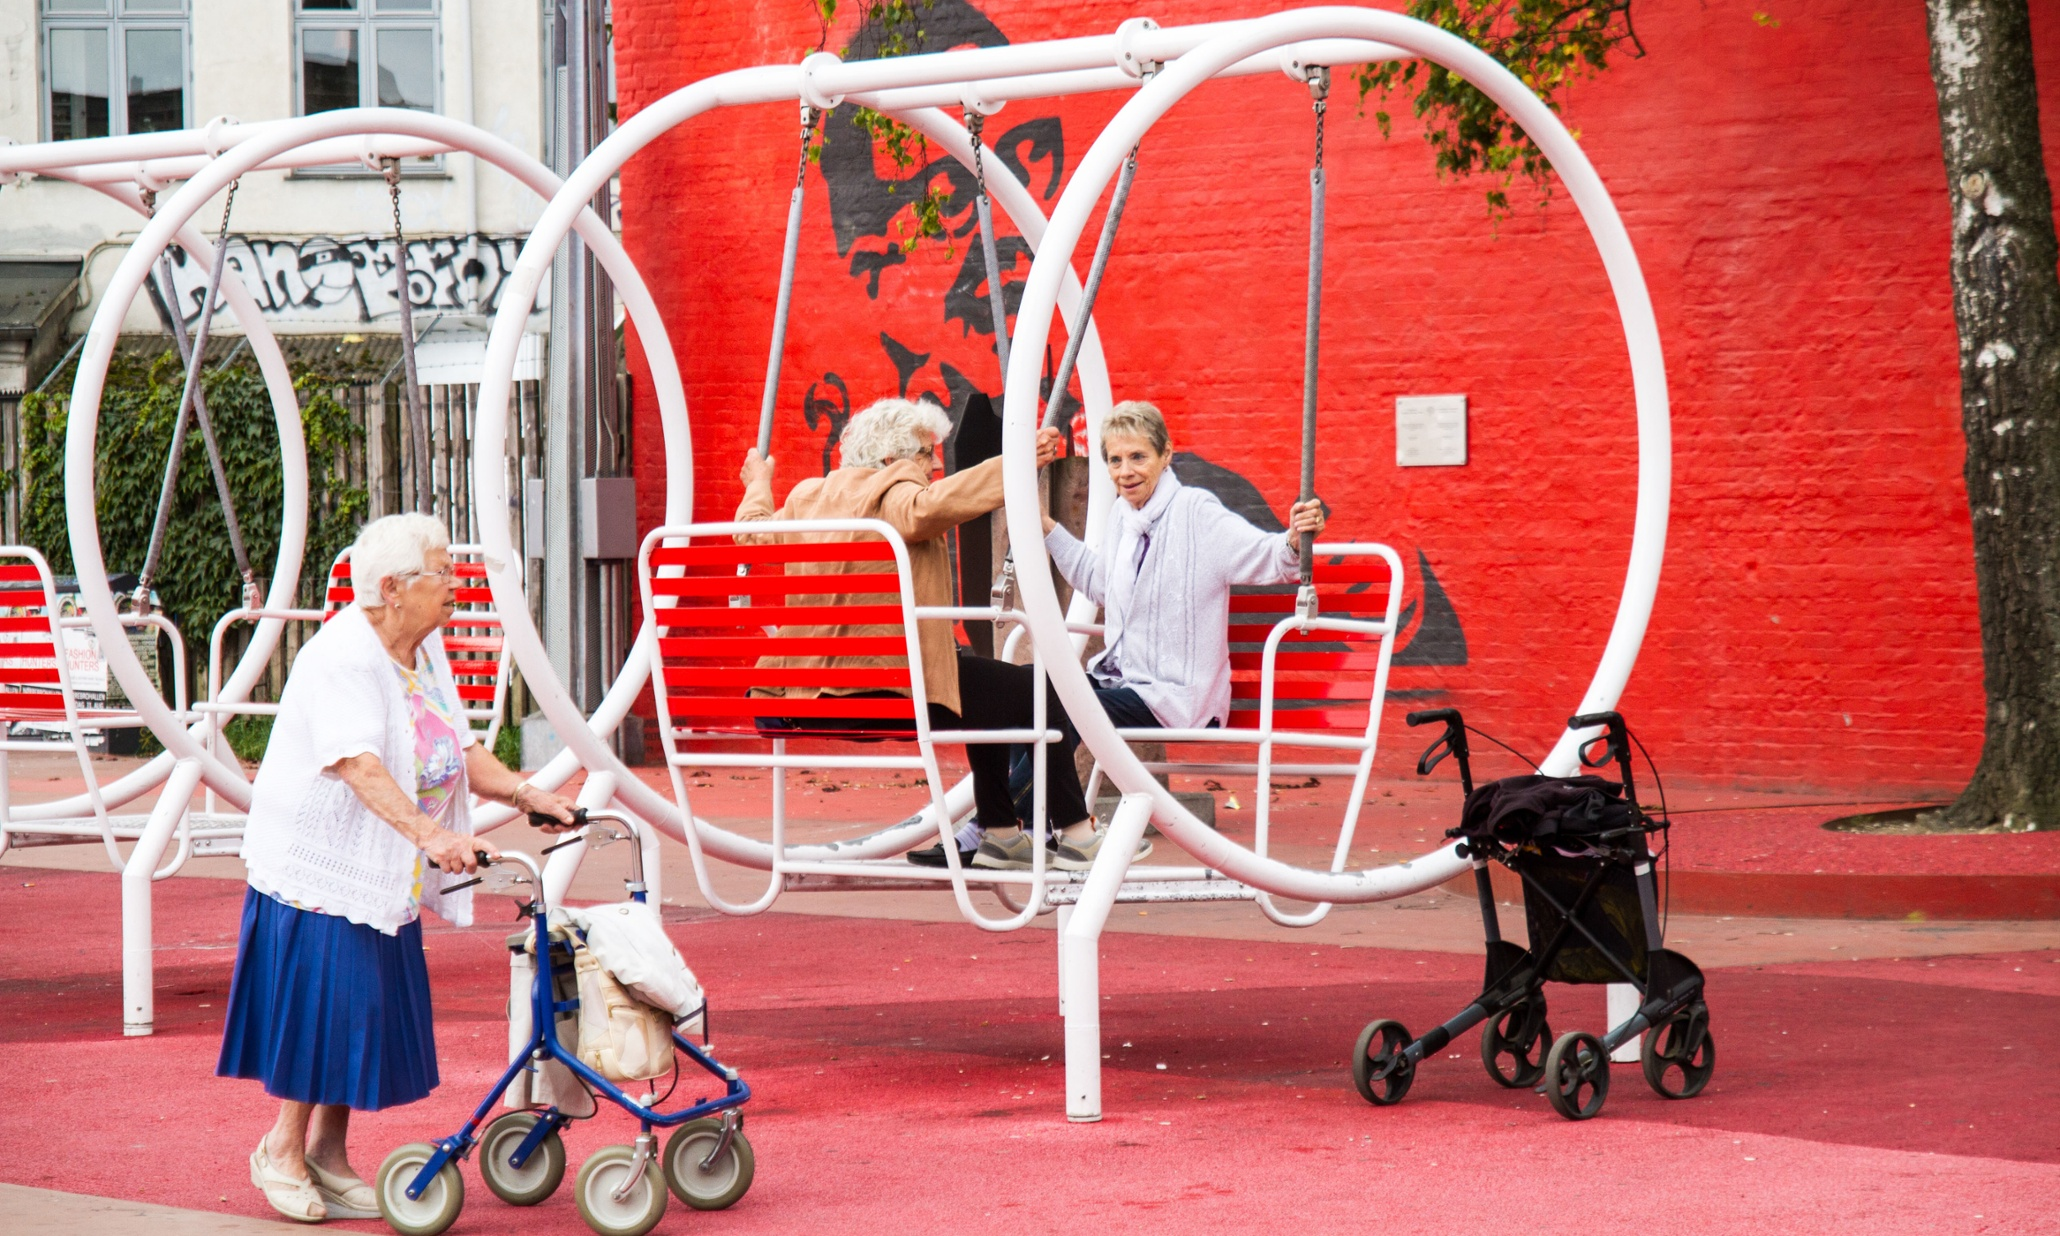 The Rise Of Urban Playgrounds For The Elderly Cities